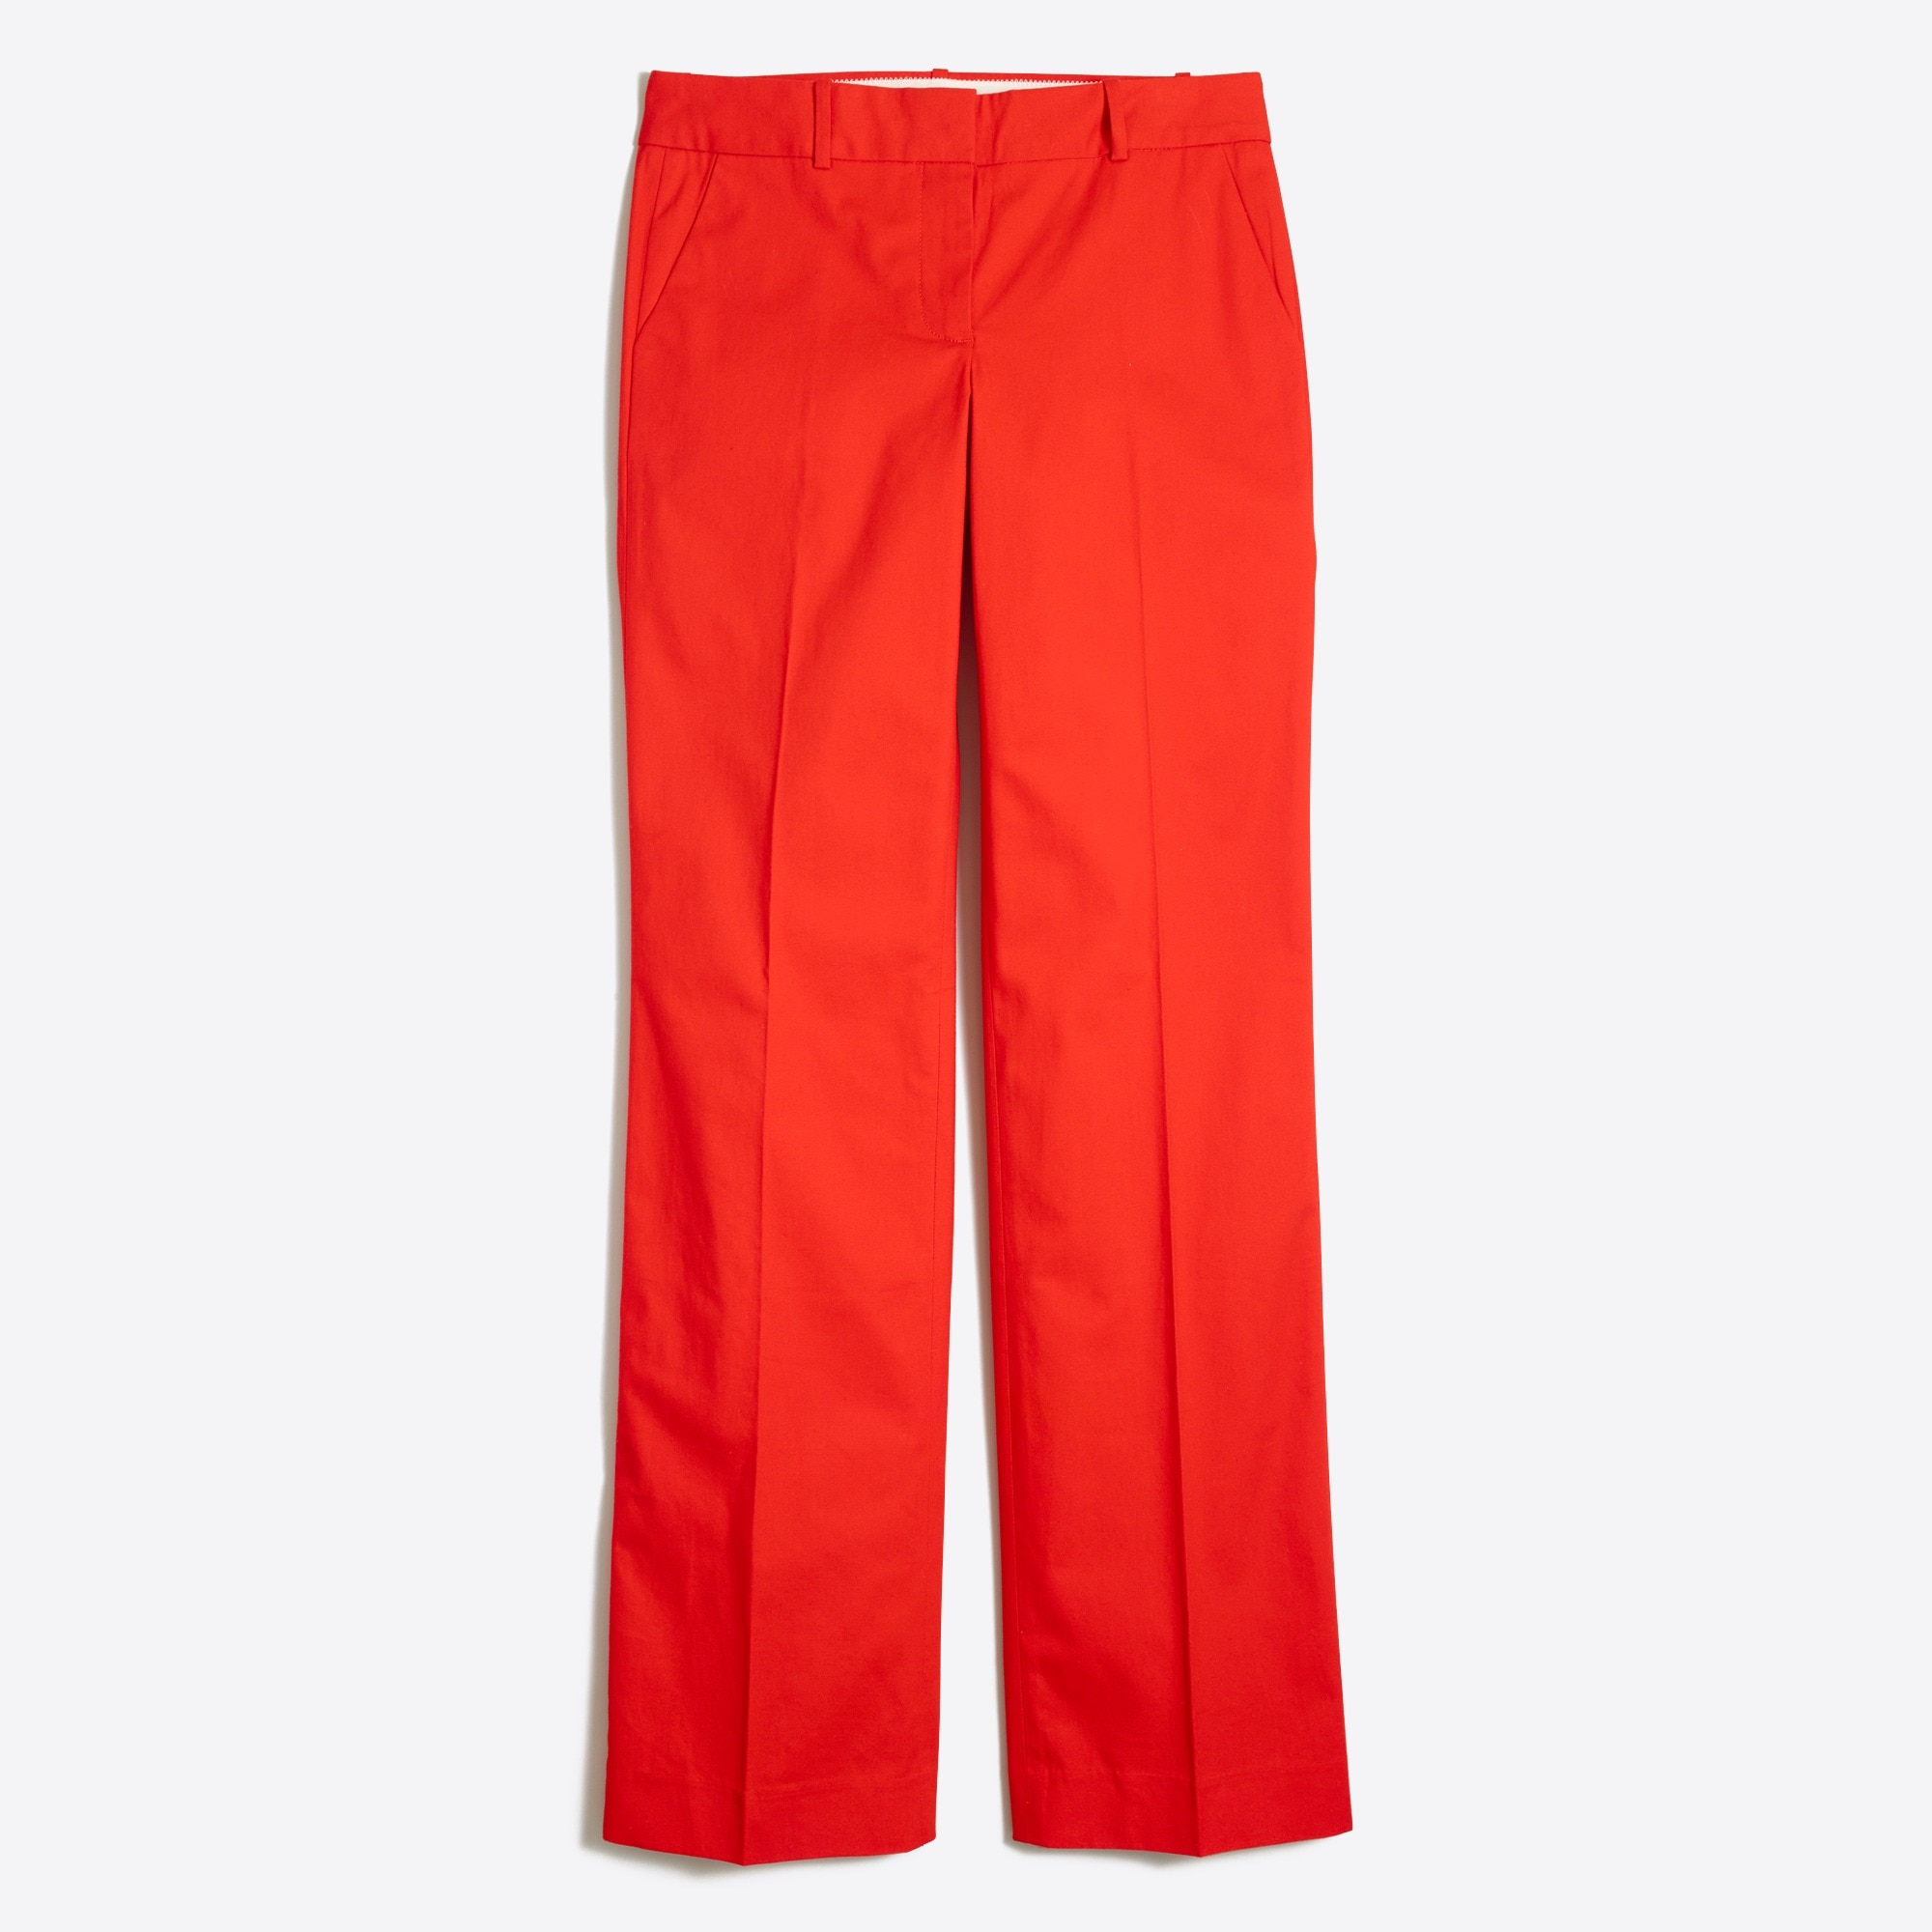 Addison chino pant factorywomen wear-to-work shop c